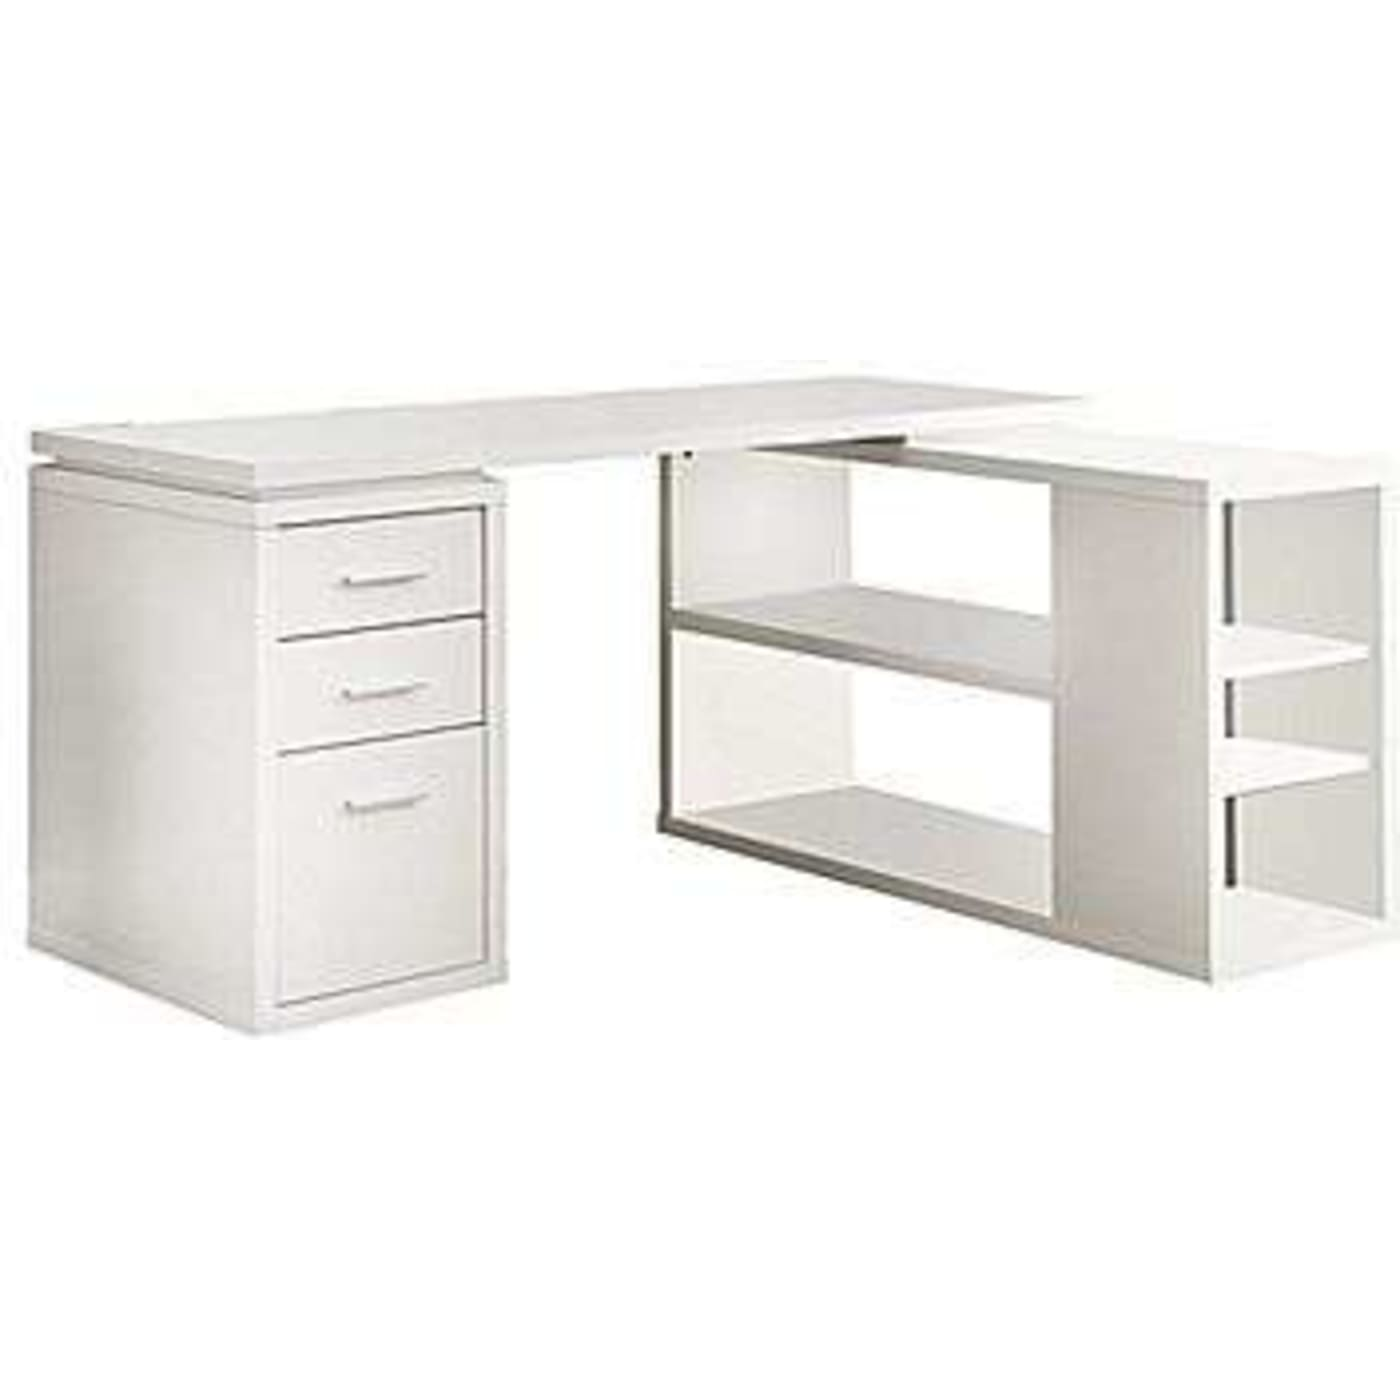 Charmant White Corner L Shaped Office Desk With Drawers U0026 Shelving